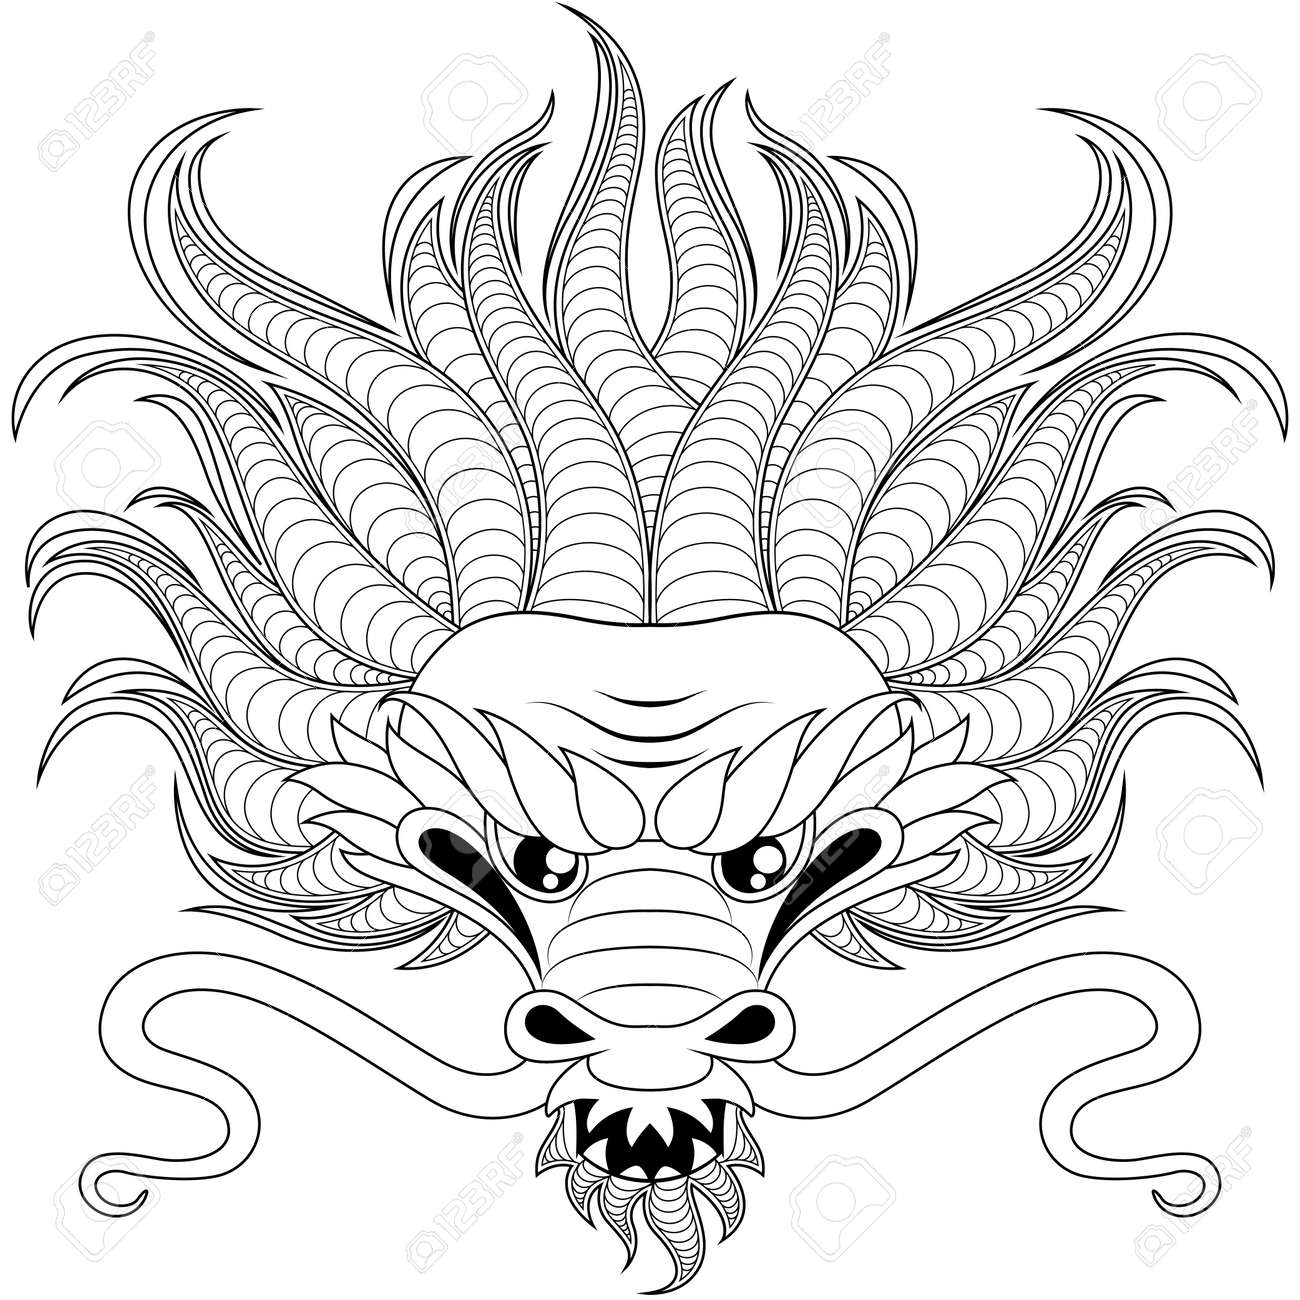 Chinese Dragon Head Stock Photos. Royalty Free Chinese Dragon Head ...